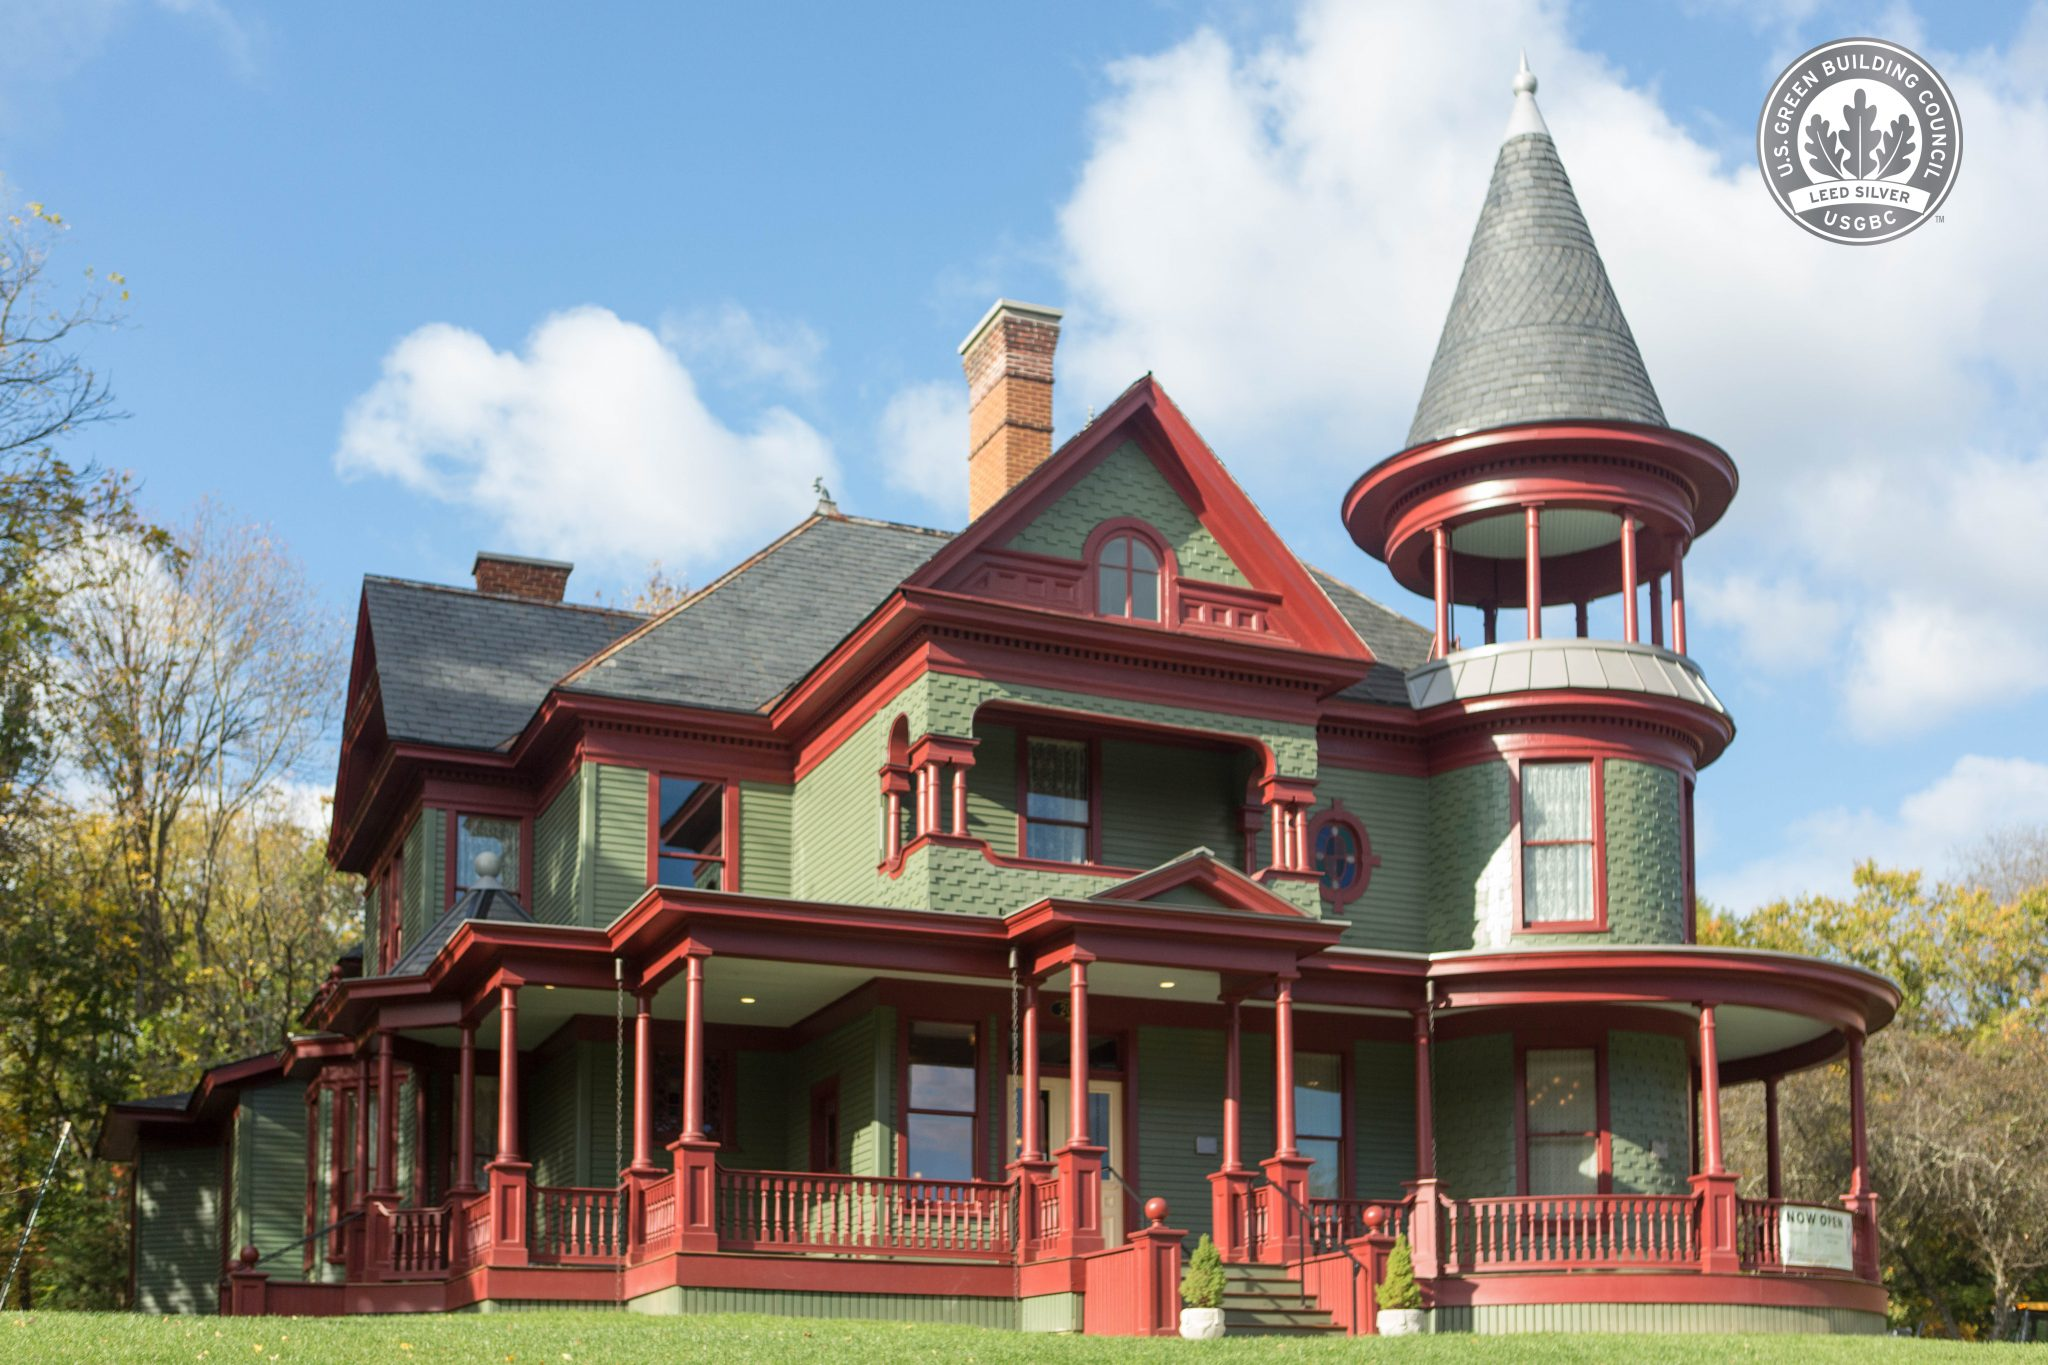 Alexander Black House & Cultural Center Restoration